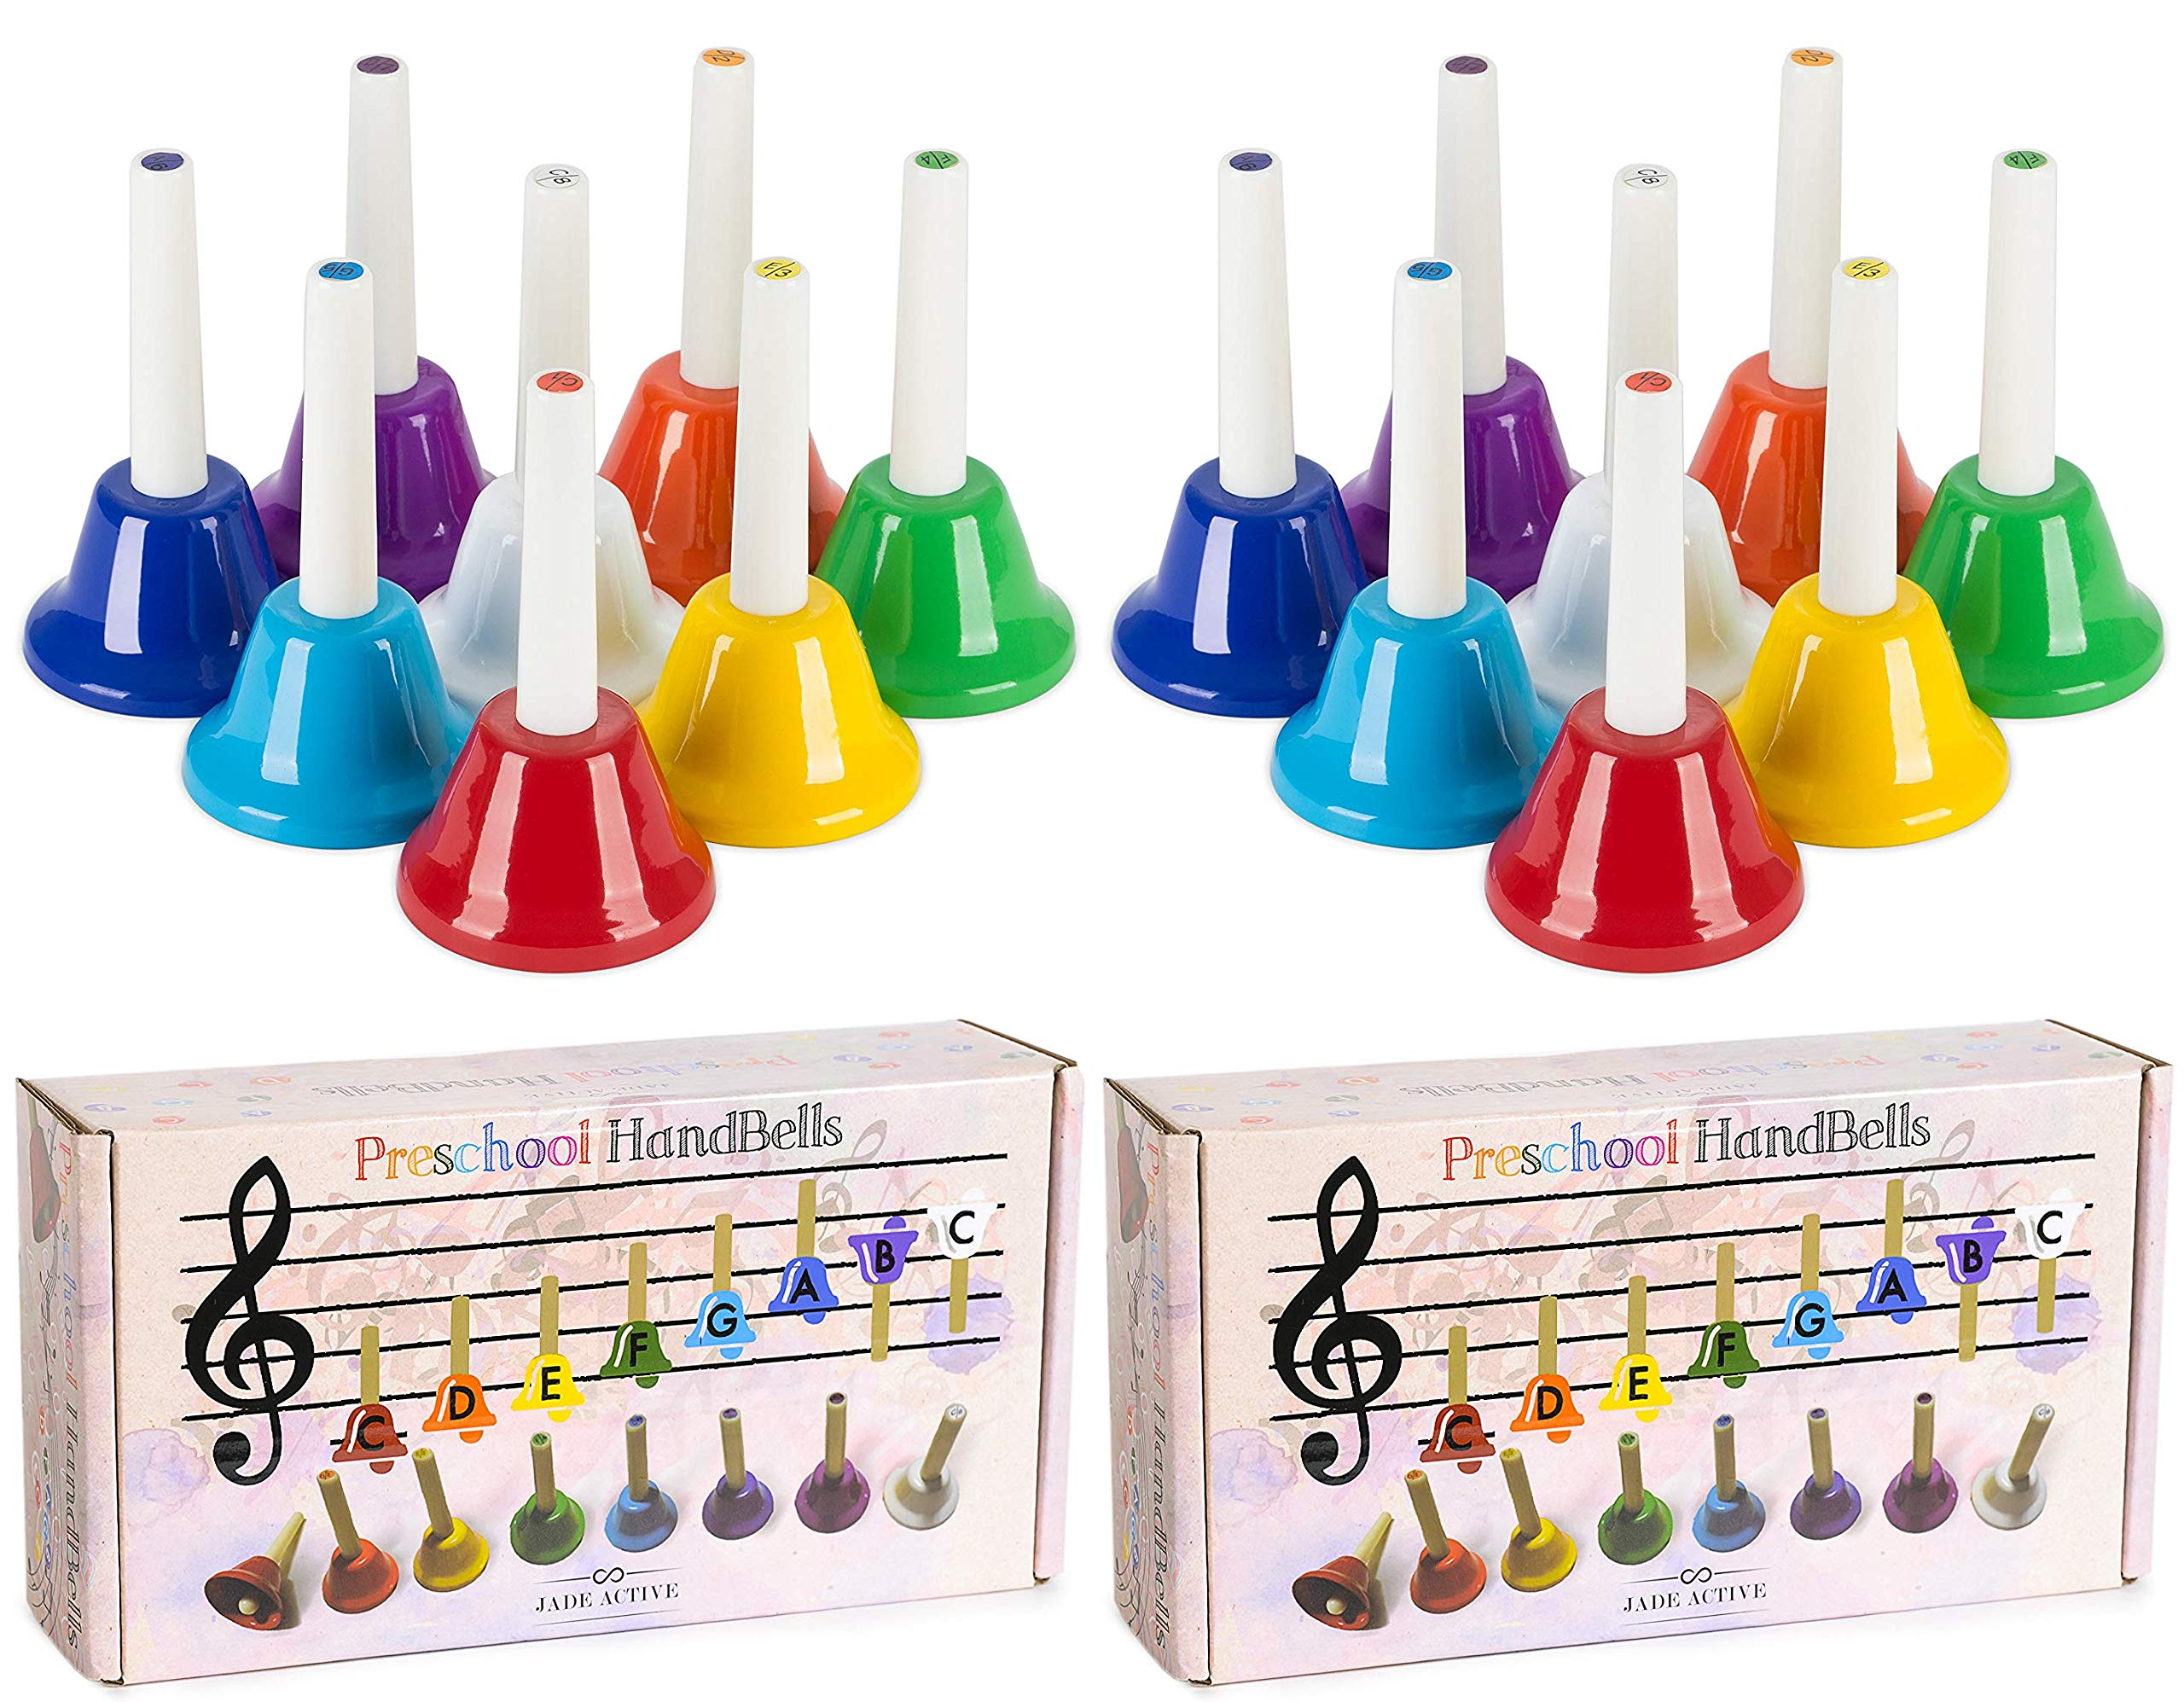 Jade Active 2 Pcs Handbell Set - Musical Bells for Children - Musical Learning at an Early Age by Jade-Active